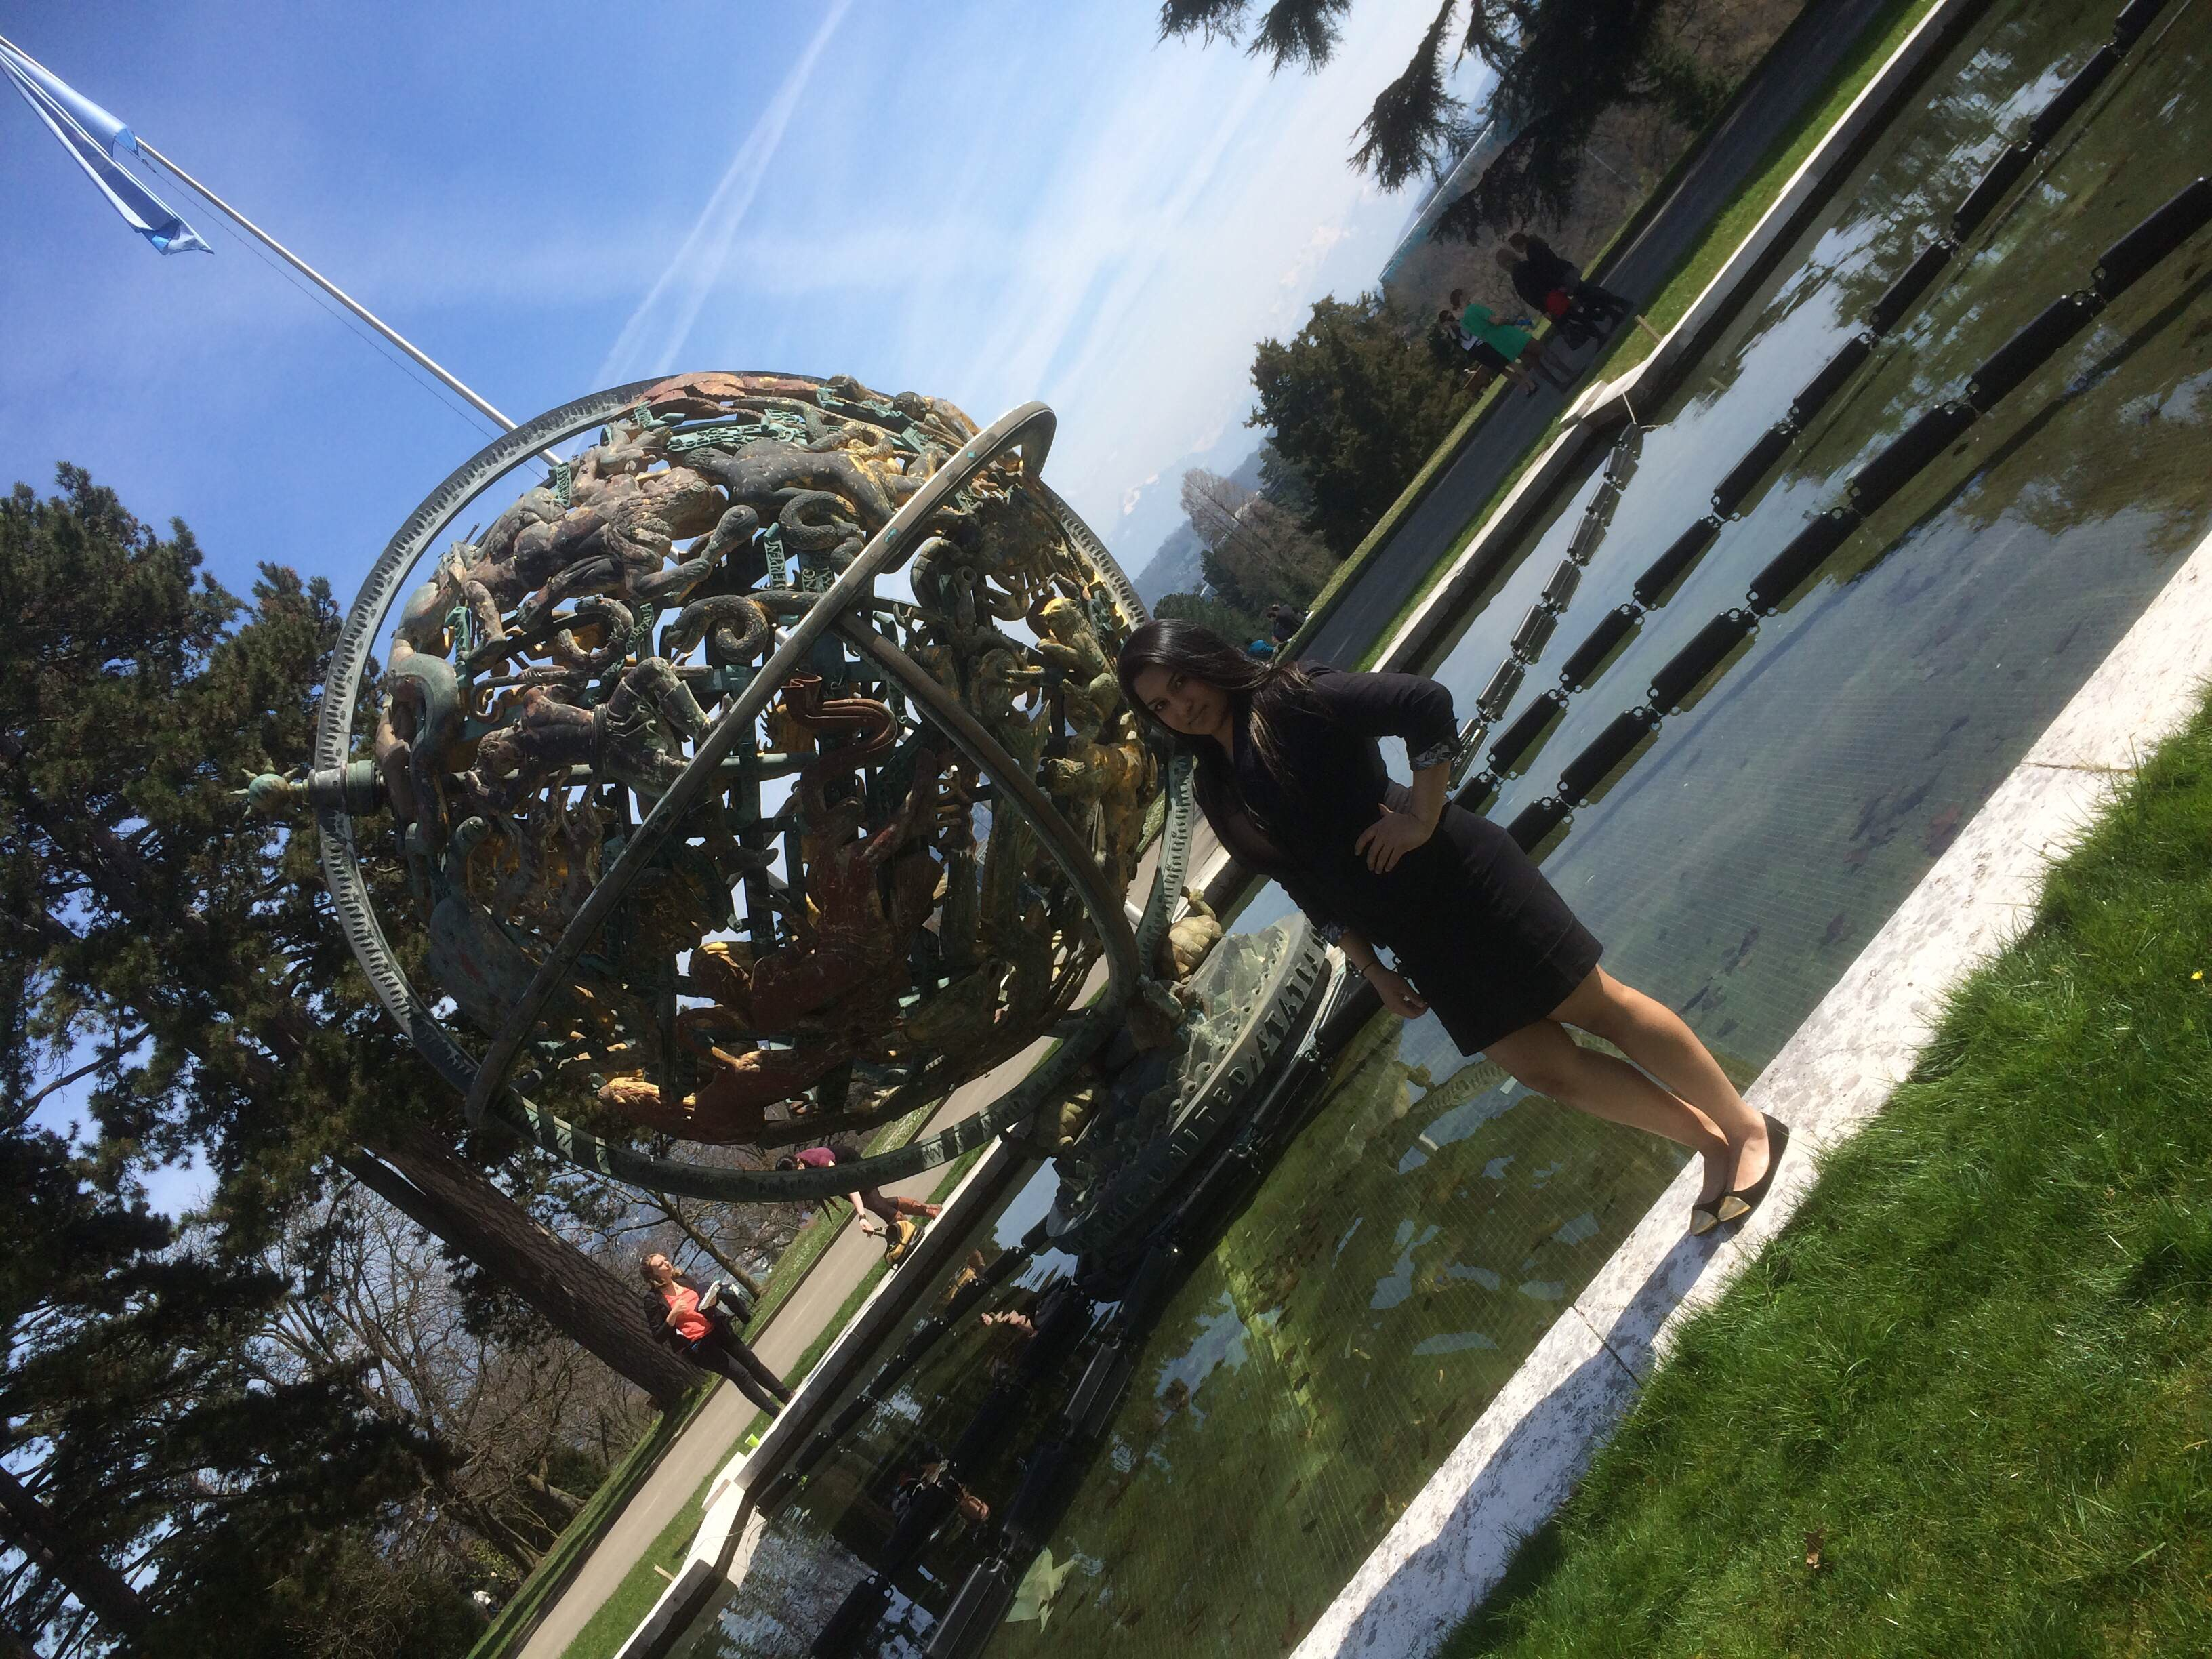 Rumsha Zahid '15 in the gardens of the Palais des Nations at the 2014 Geneva International Model UN conference in Switzerland.